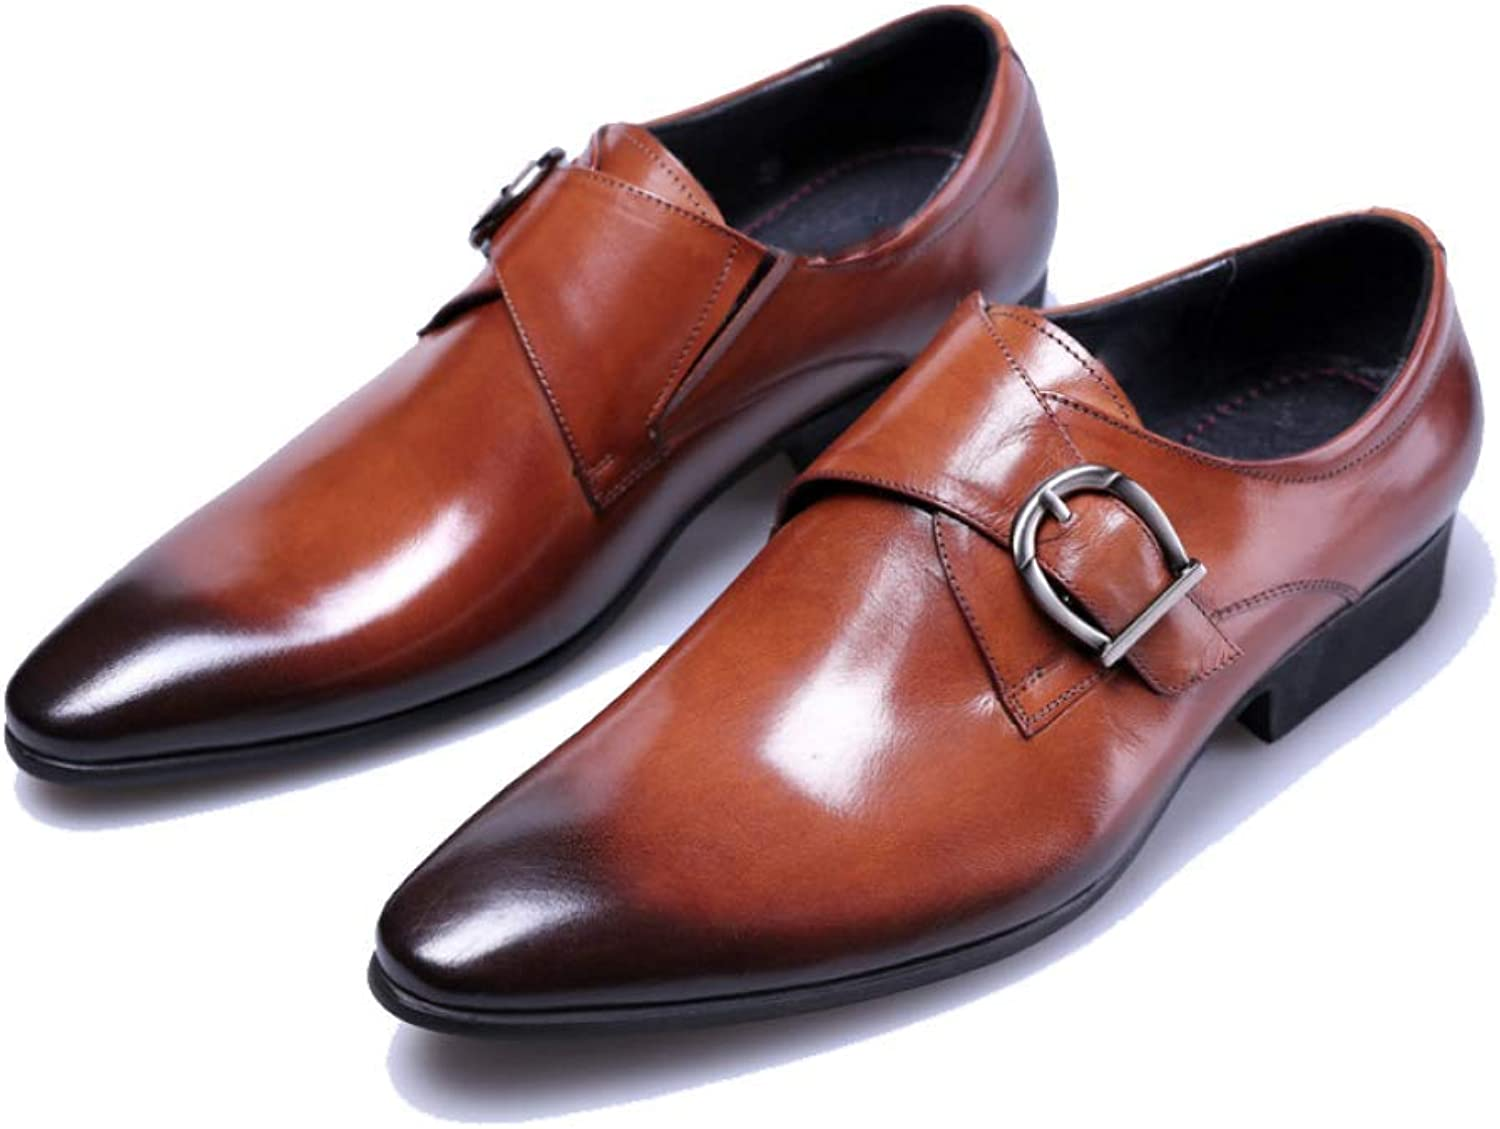 9b8a19477c8c6 NIUMT European Version, Pointed, Work shoes, Business, Business ...